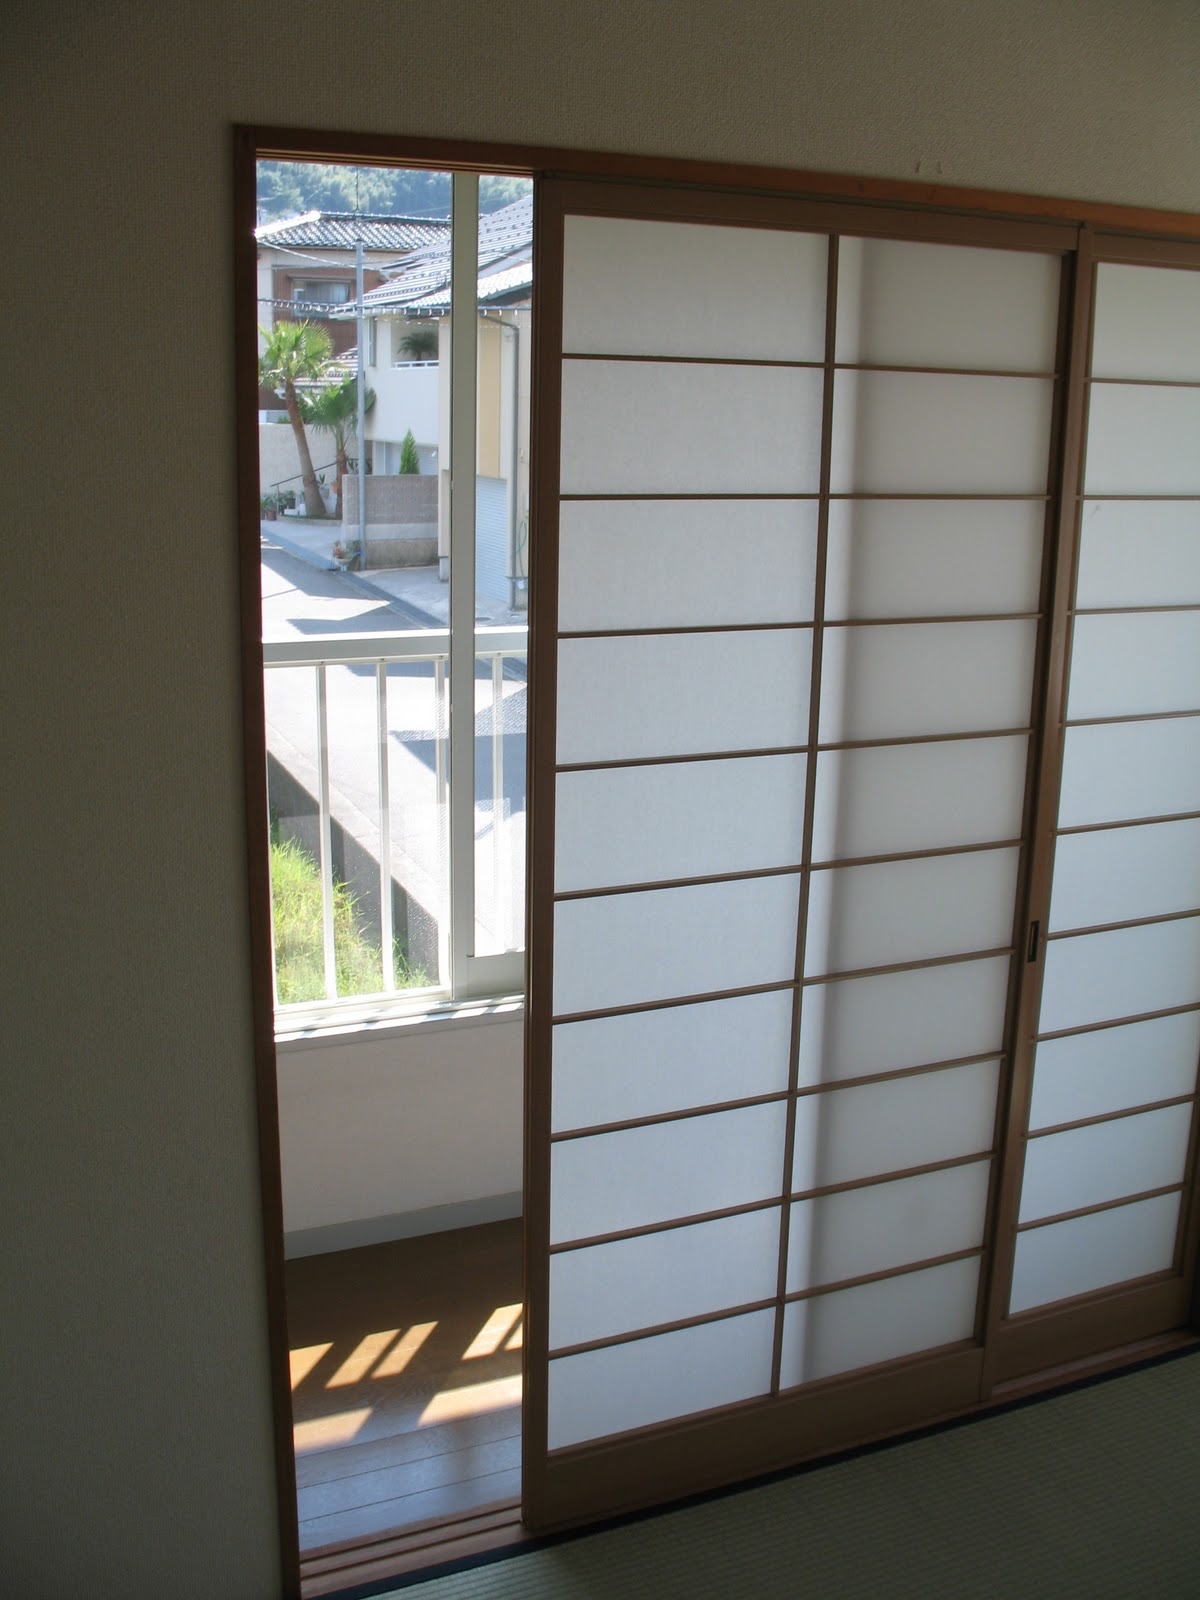 You can imagine how long the paper was pristine in our apartment given that we\u0027ve never had to be careful around paper doors before. & The New Normal: Shoji Door Re-Papering